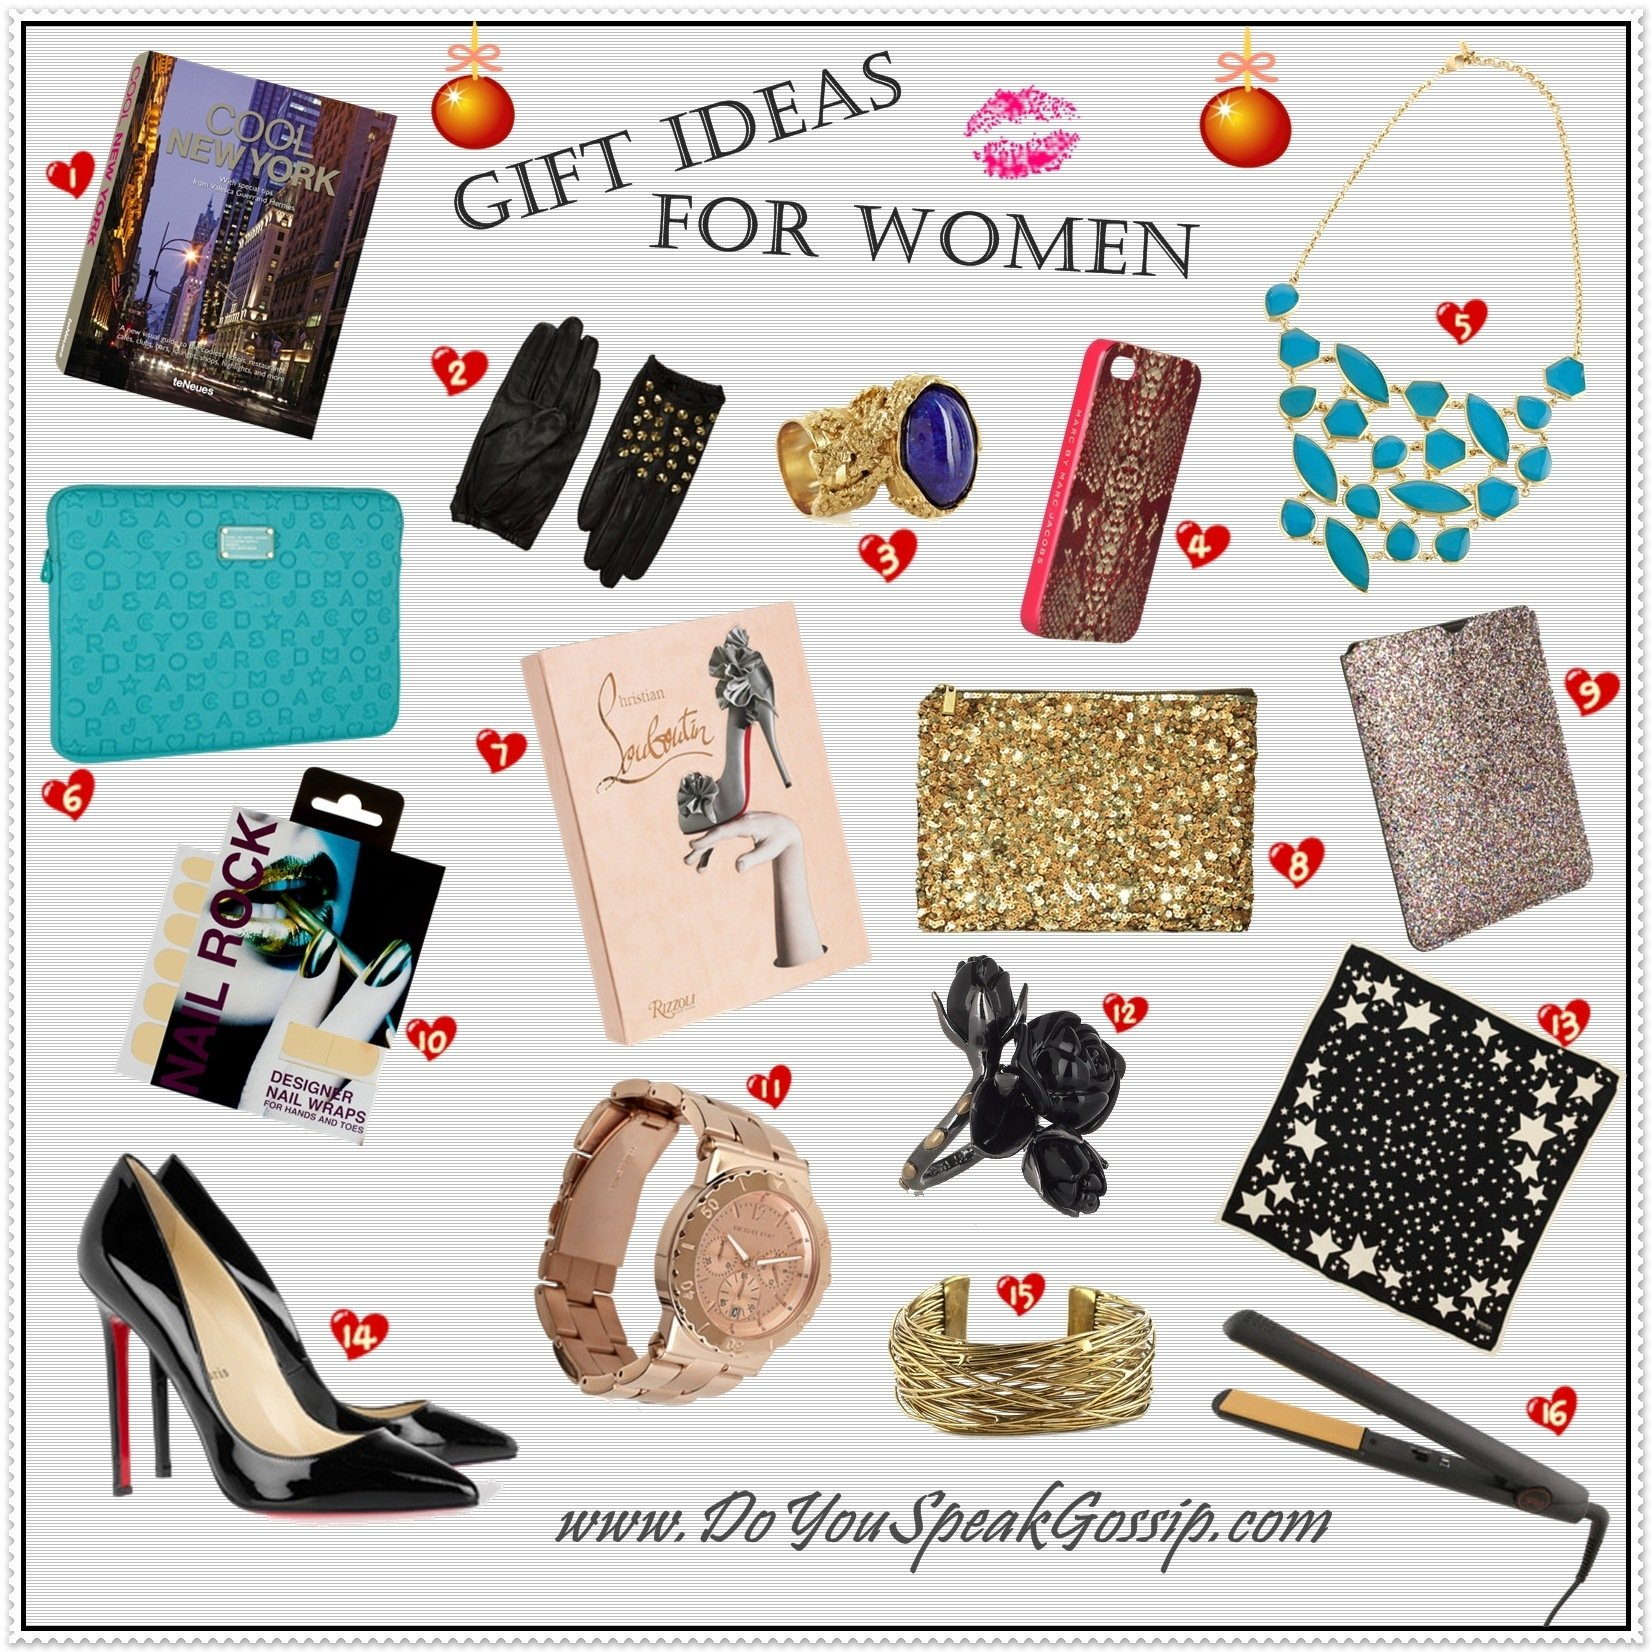 10 Unique Gift Ideas For Women Who Have Everything gift ideas for women do you speak gossipdo you speak gossip 1 2020